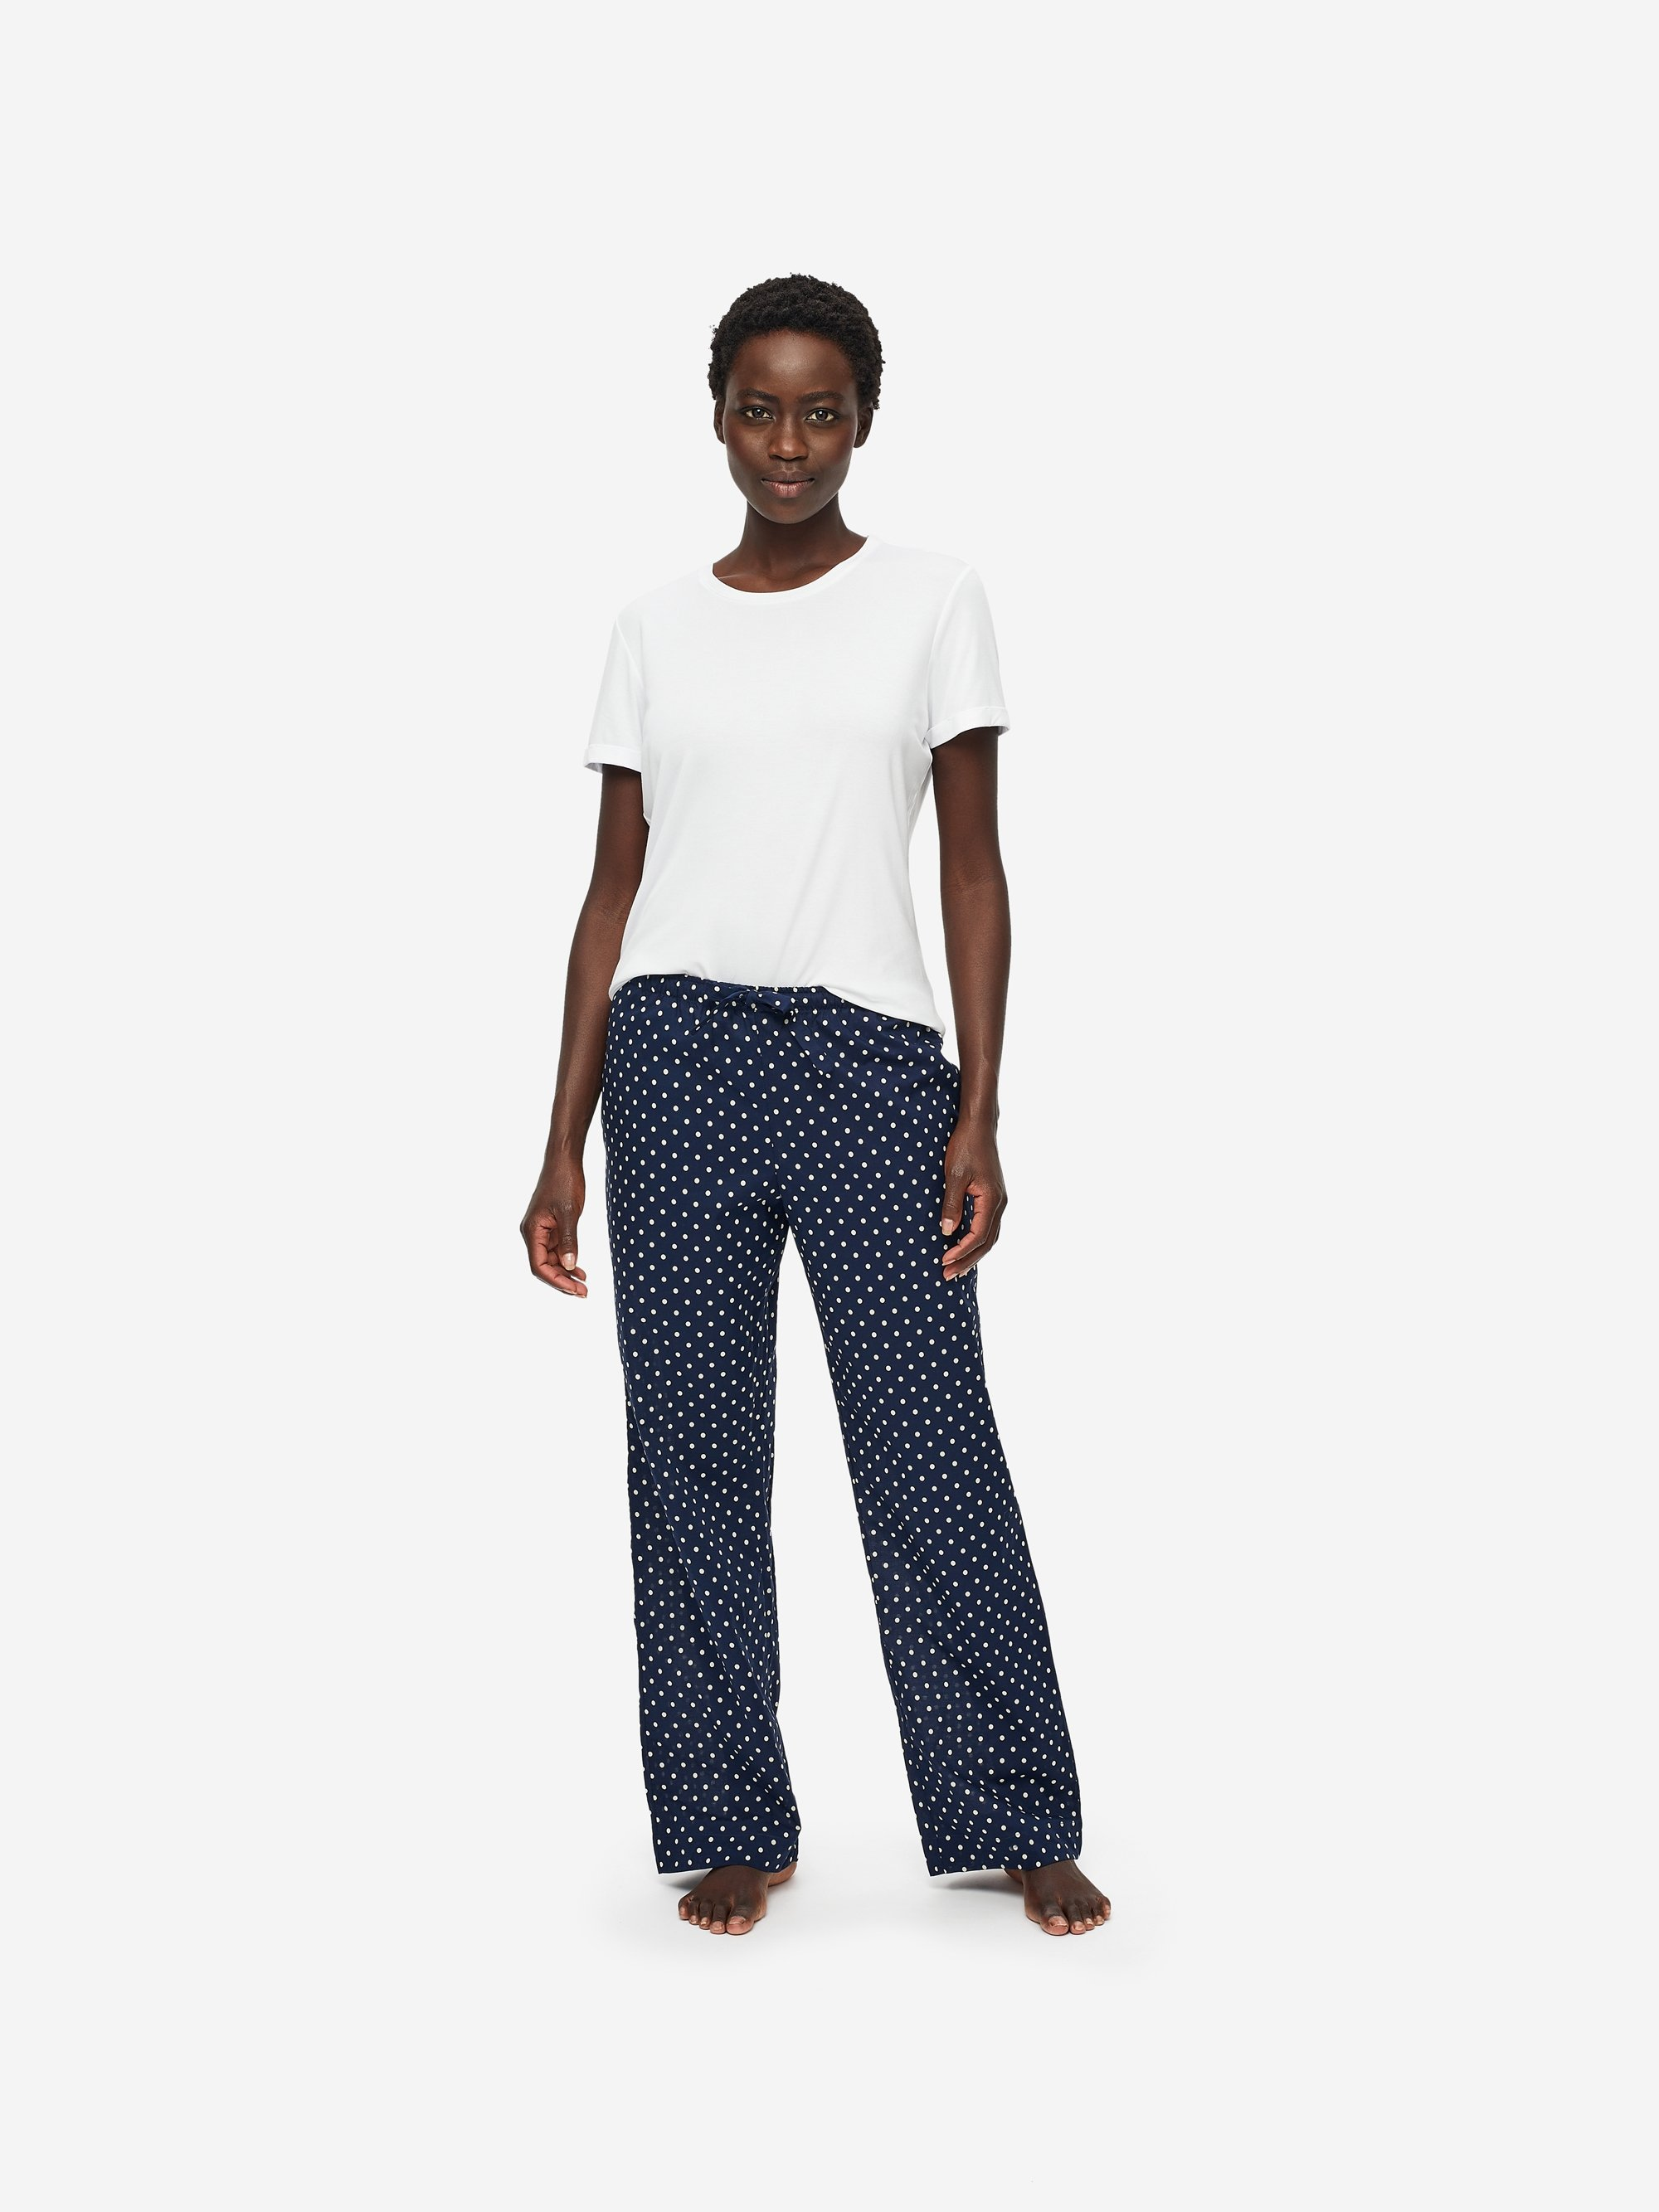 Women's Lounge Trousers Plaza 60 Cotton Batiste Navy